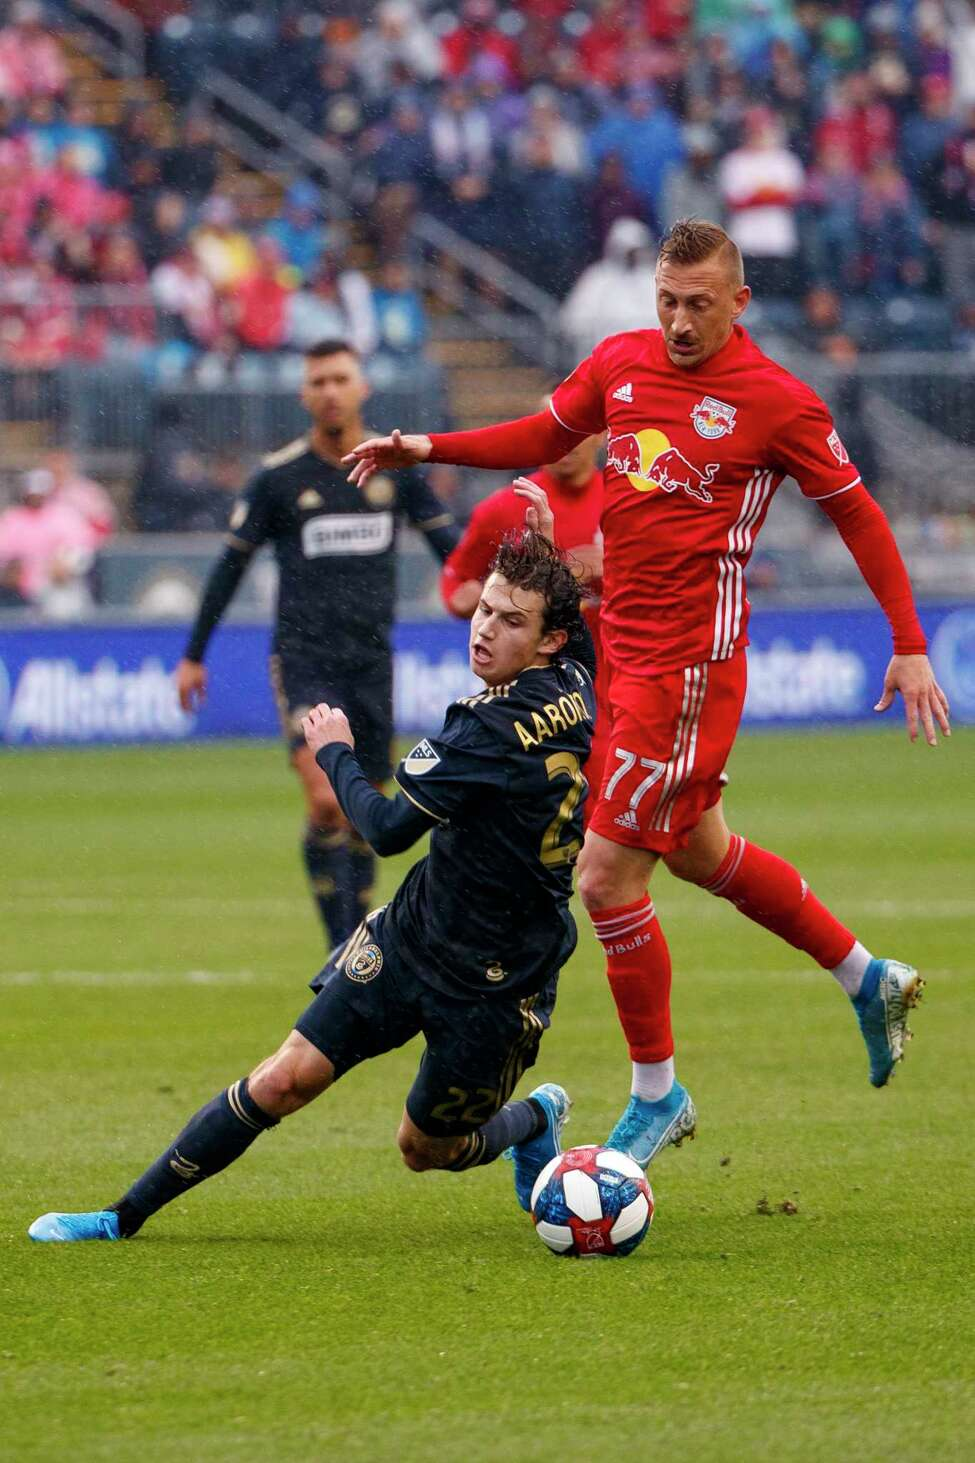 Philadelphia Union's Brenden Aaronson, left, goes after the ball against New York Red Bulls' Daniel Royer, right, during first half of an MLS soccer Eastern Conference first-round playoff match, Sunday, Oct. 20, 2019, in Chester, Pa. (AP Photo/Chris Szagola)